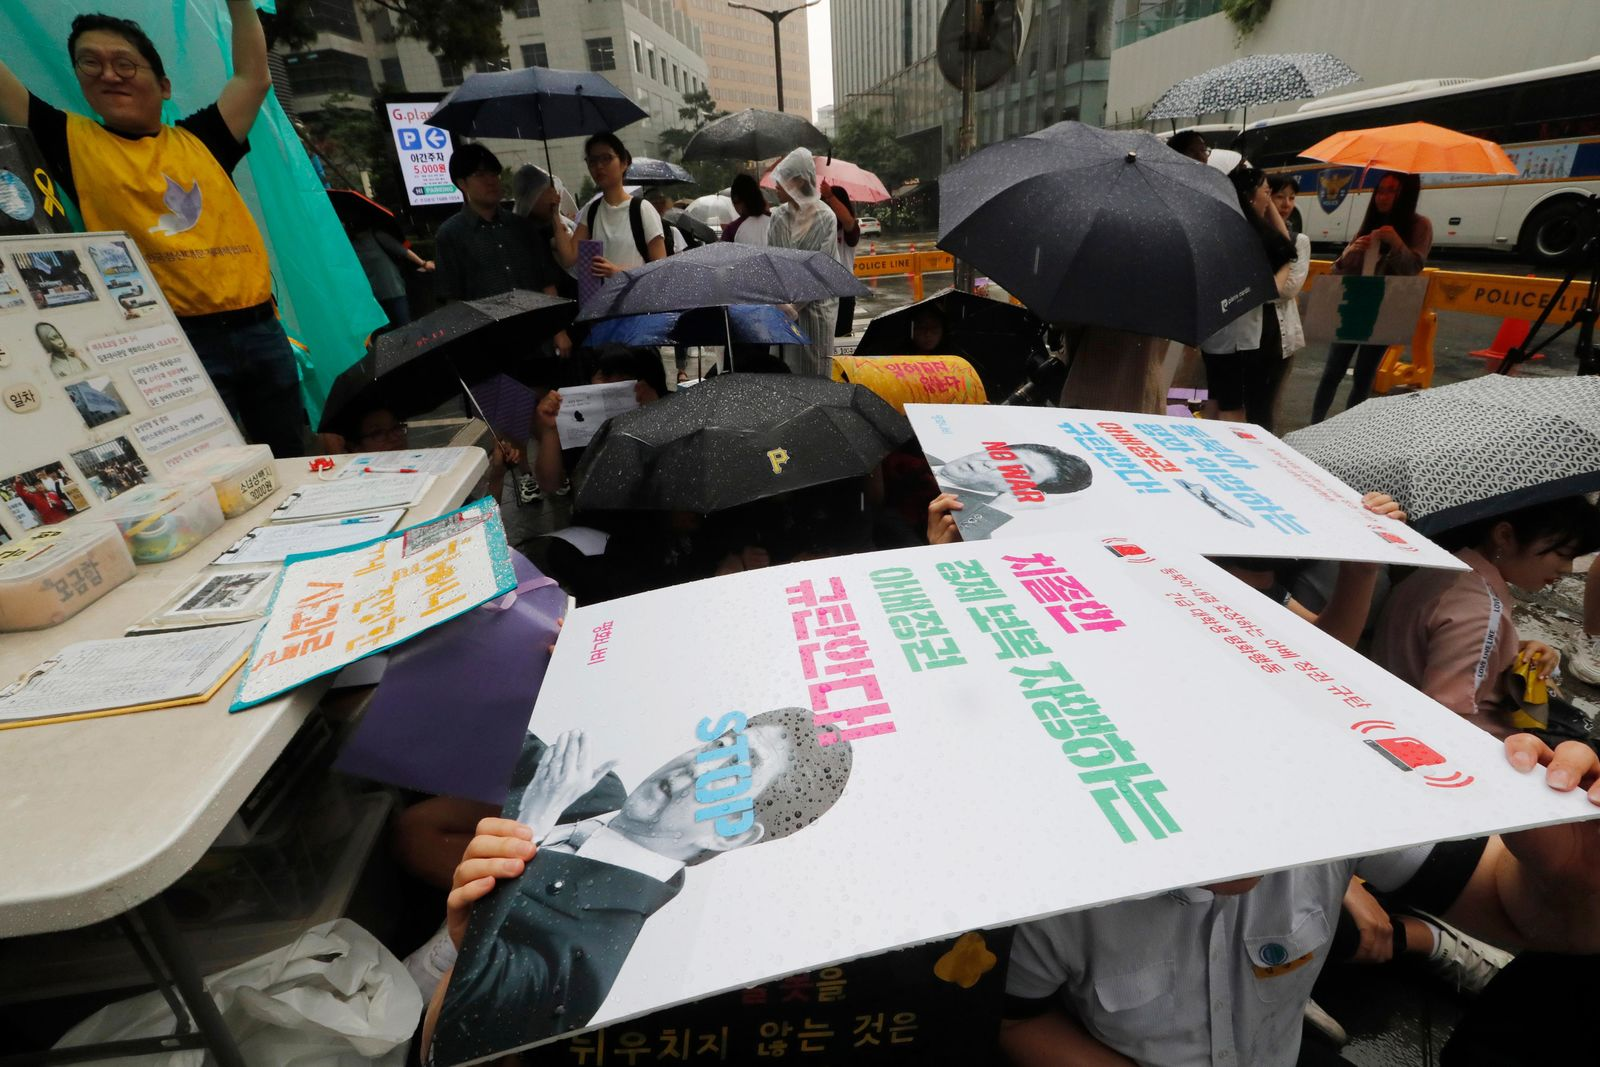 "Protesters hold their banners in the rain during a rally demanding full compensation and an apology for wartime sex slaves from Japanese government in front of the Japanese Embassy in Seoul, Wednesday, July 17, 2019. In his strongest comments yet on a growing trade dispute, South Korean President Moon Jae-in urged Japan on Monday to lift recently tightened controls on high-tech exports to South Korea, which he said threaten to shatter the countries' economic cooperation and could damage Japan more than South Korea. The signs read: ""Denounce, Abe's government."" (AP Photo/Ahn Young-joon)"